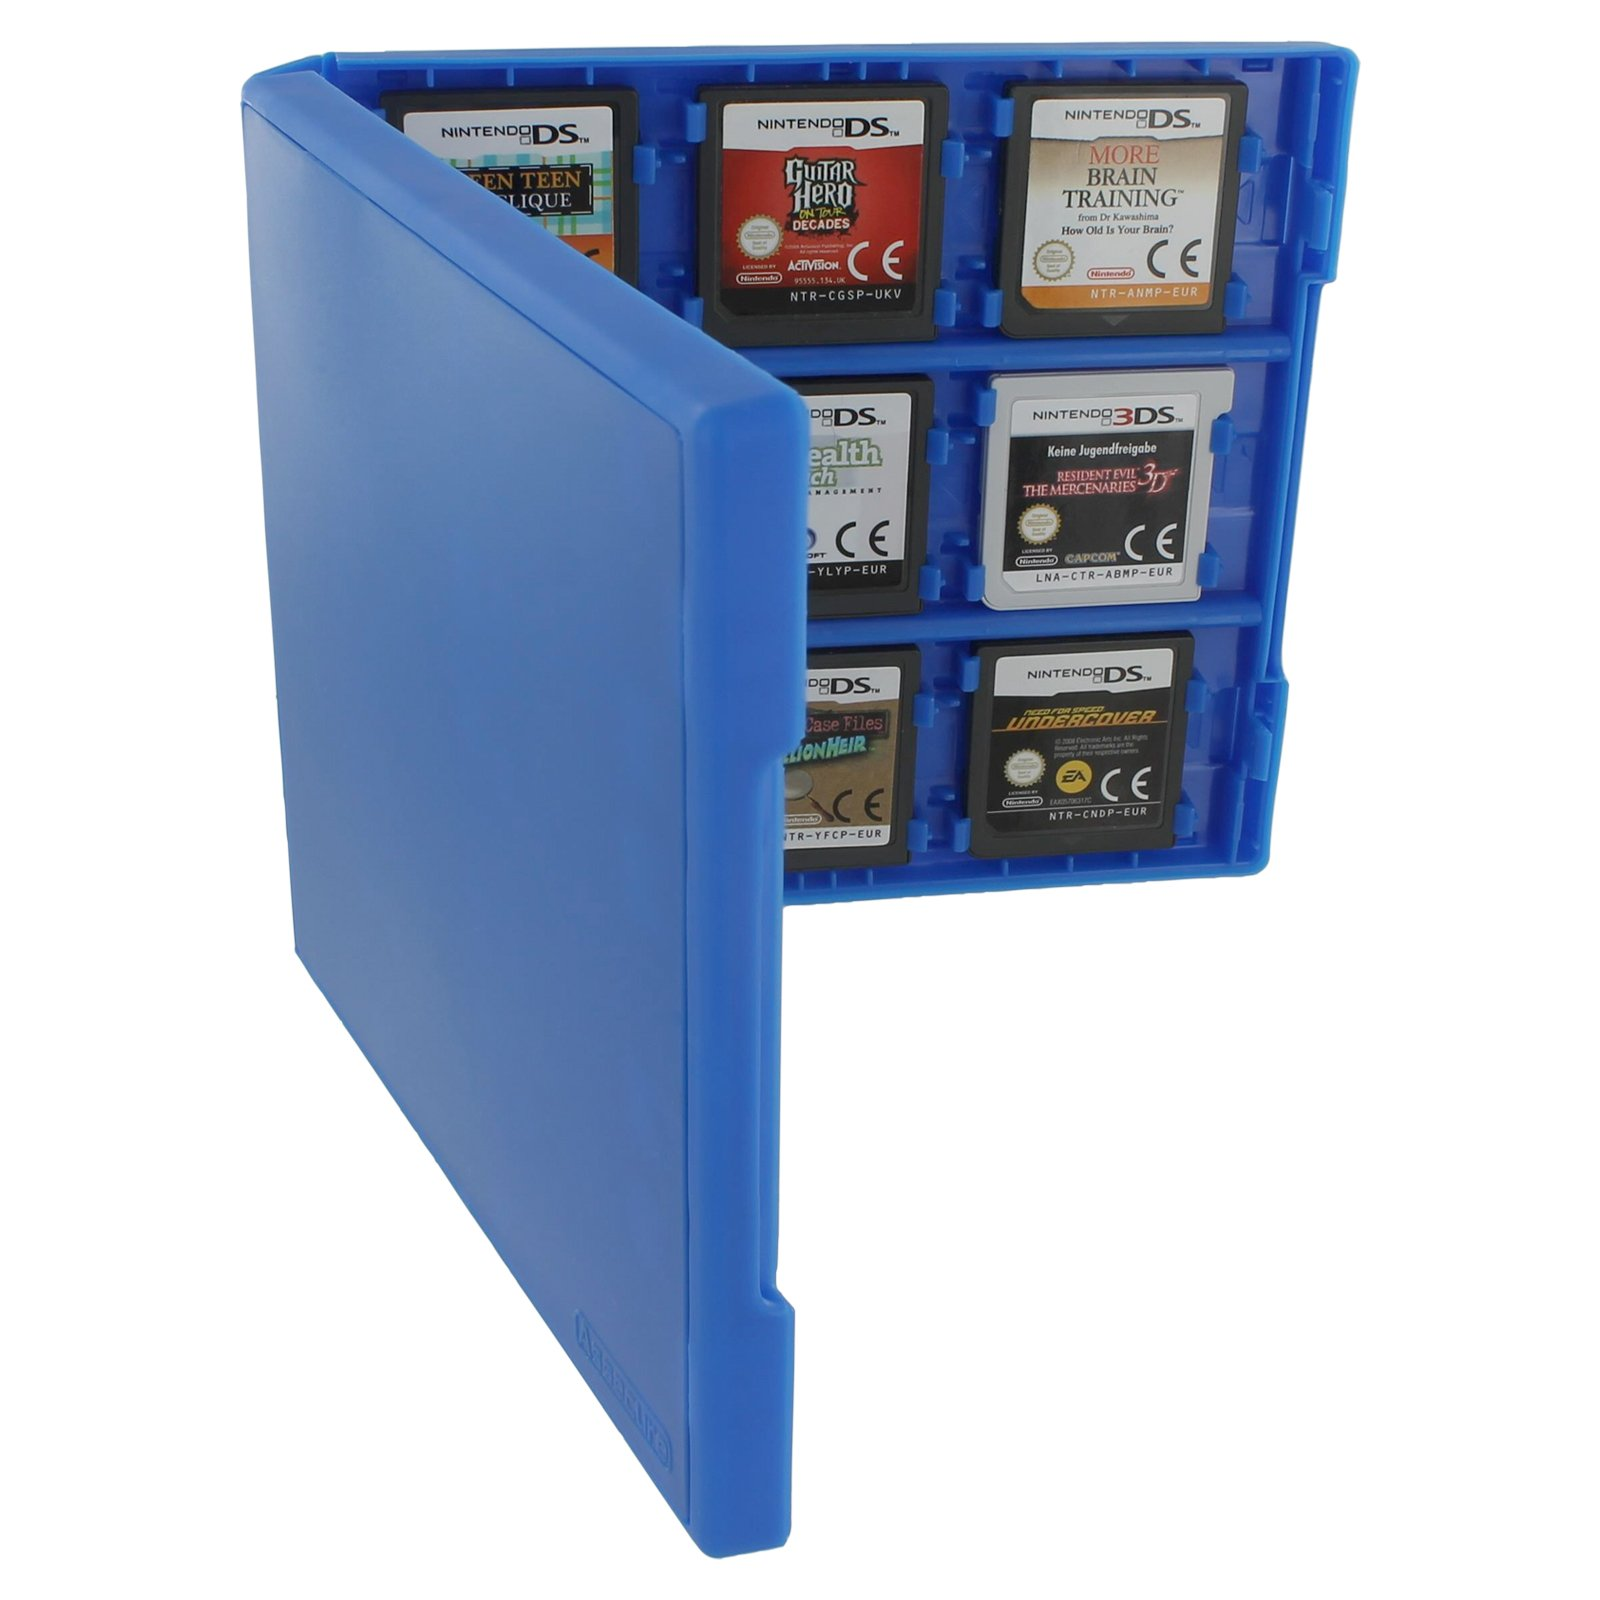 Assecure pro blue 18 in 1 game cartridge holder storage system folio style case box for Nintendo 3DS, 2DS & DS game cards